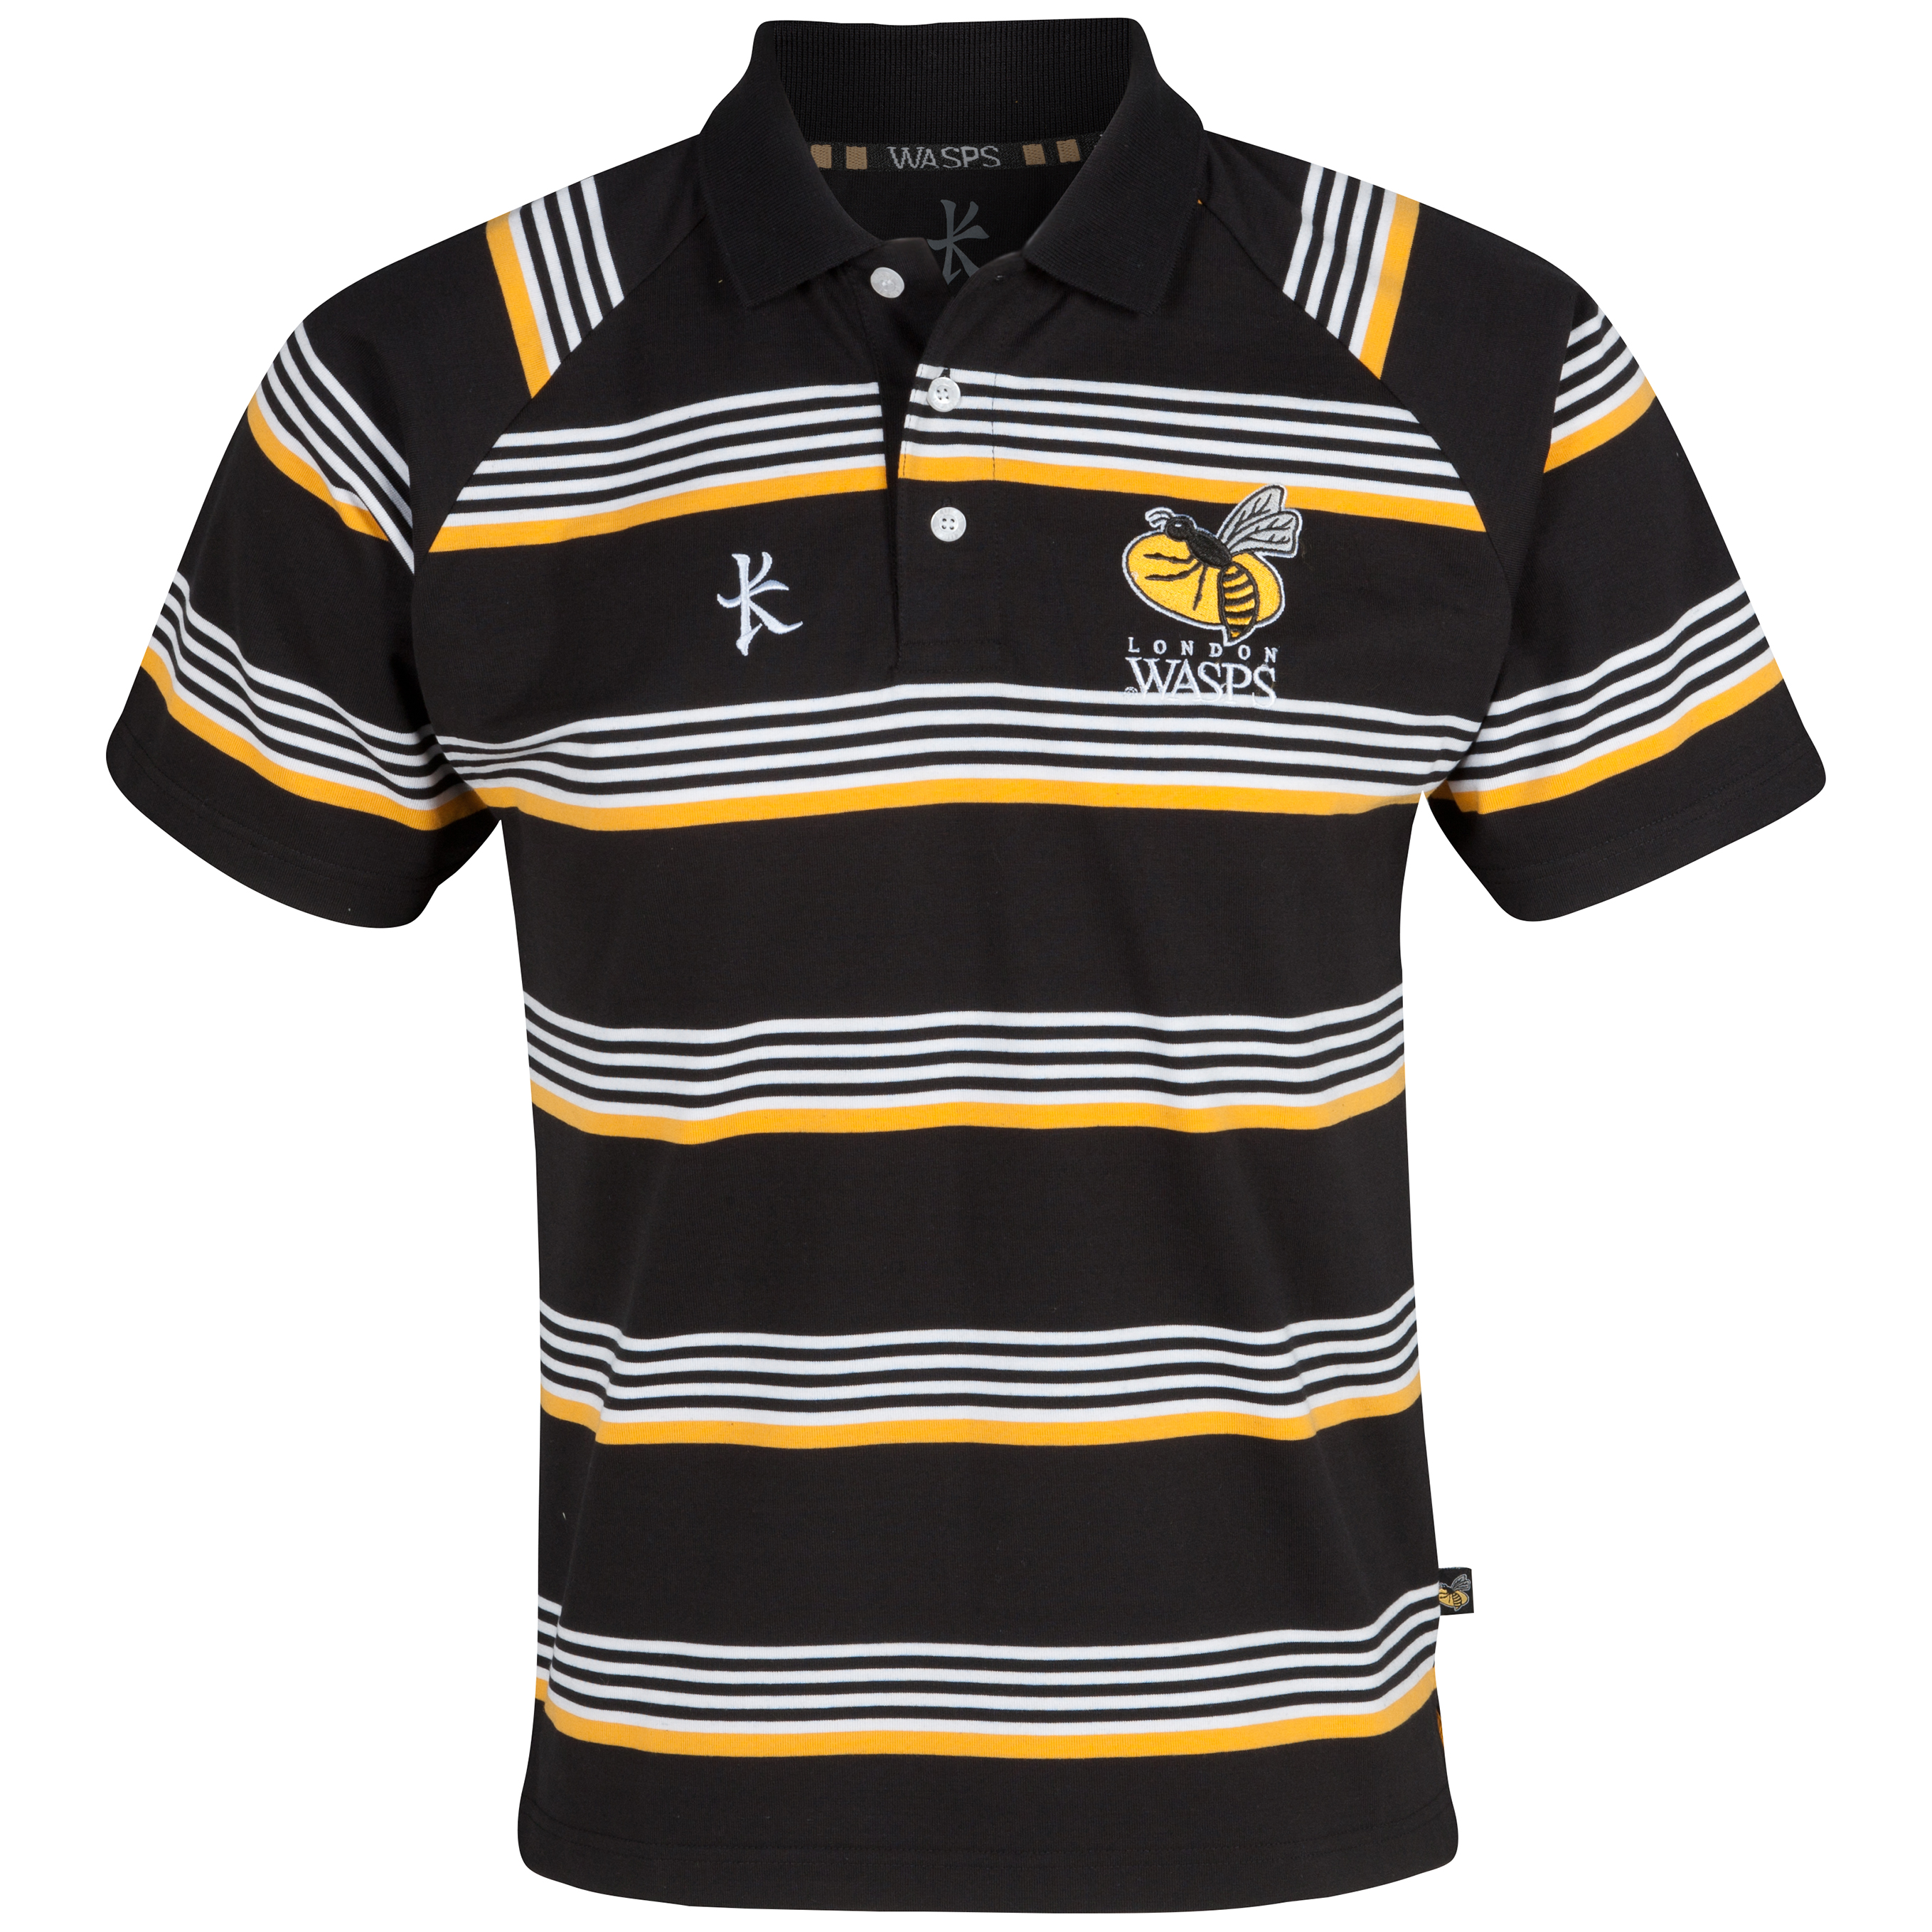 Wasps Knitted Polo - Black/White